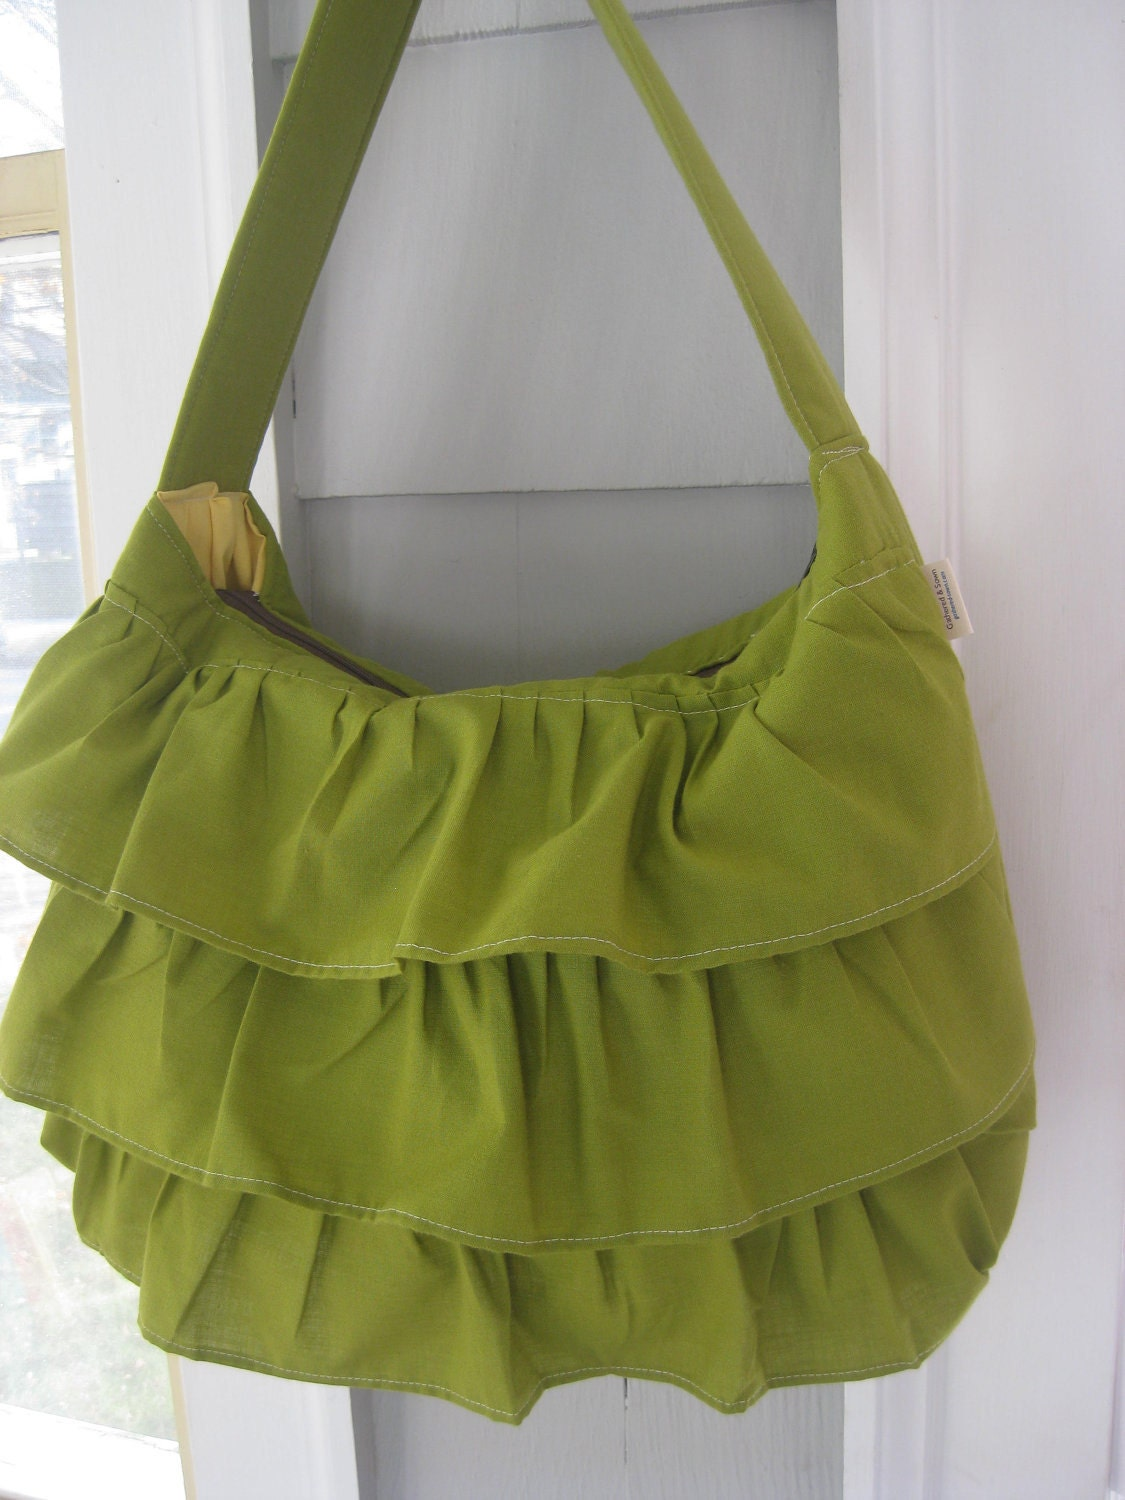 Avocado Green Ruffle Purse Large with Shoulder Strap in Rich Vintage Cotton